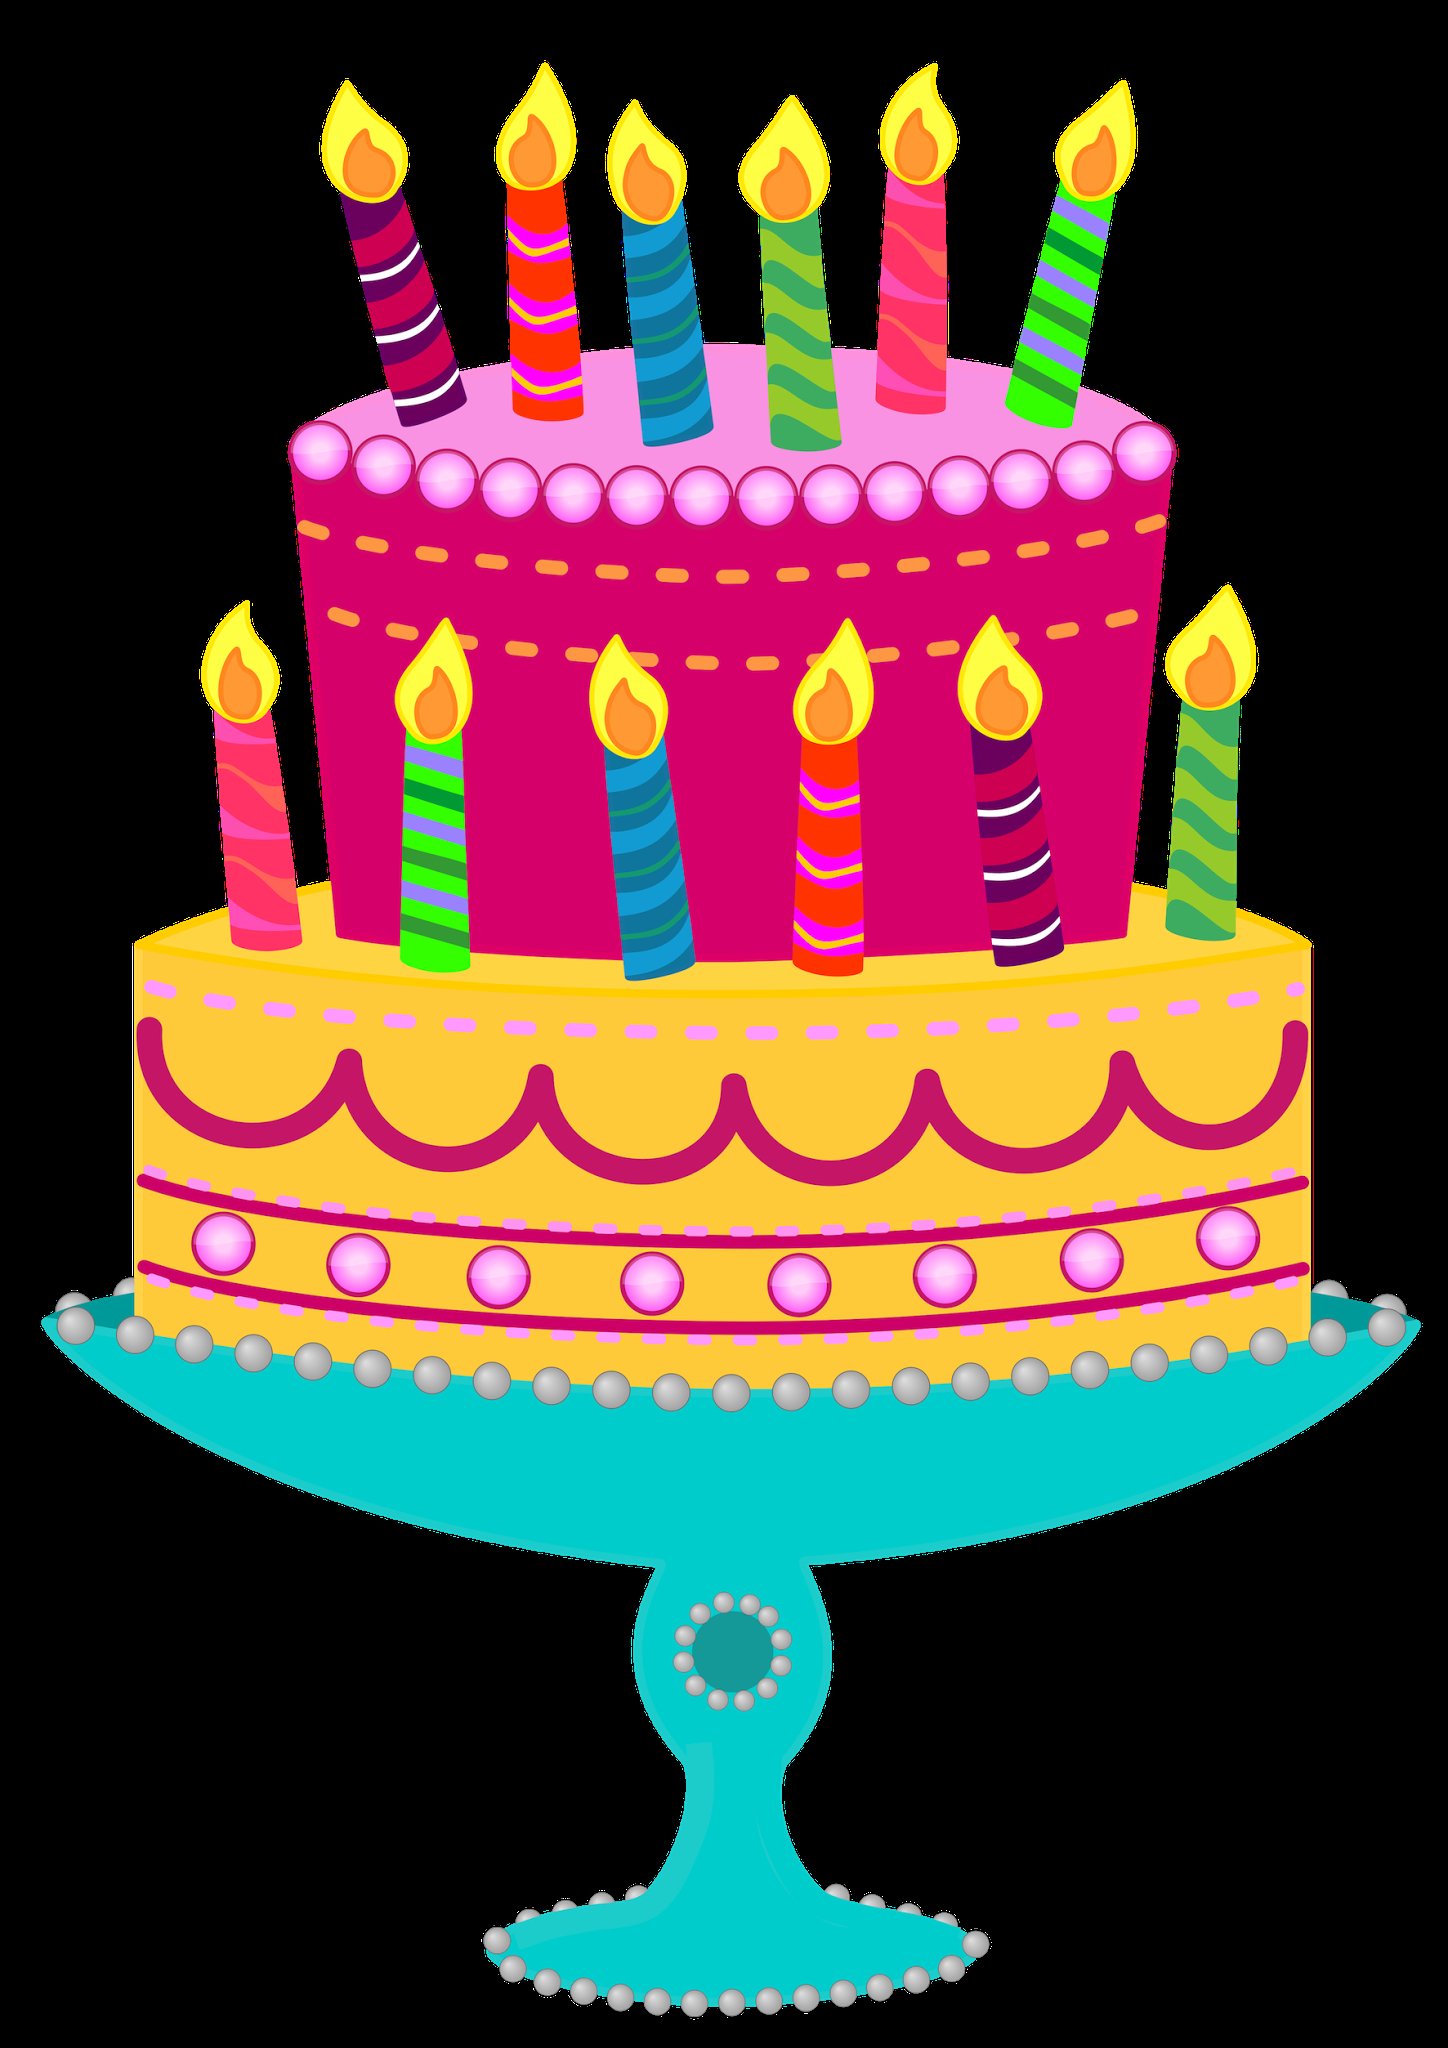 21+ Exclusive Image of Free Birthday Cake Images